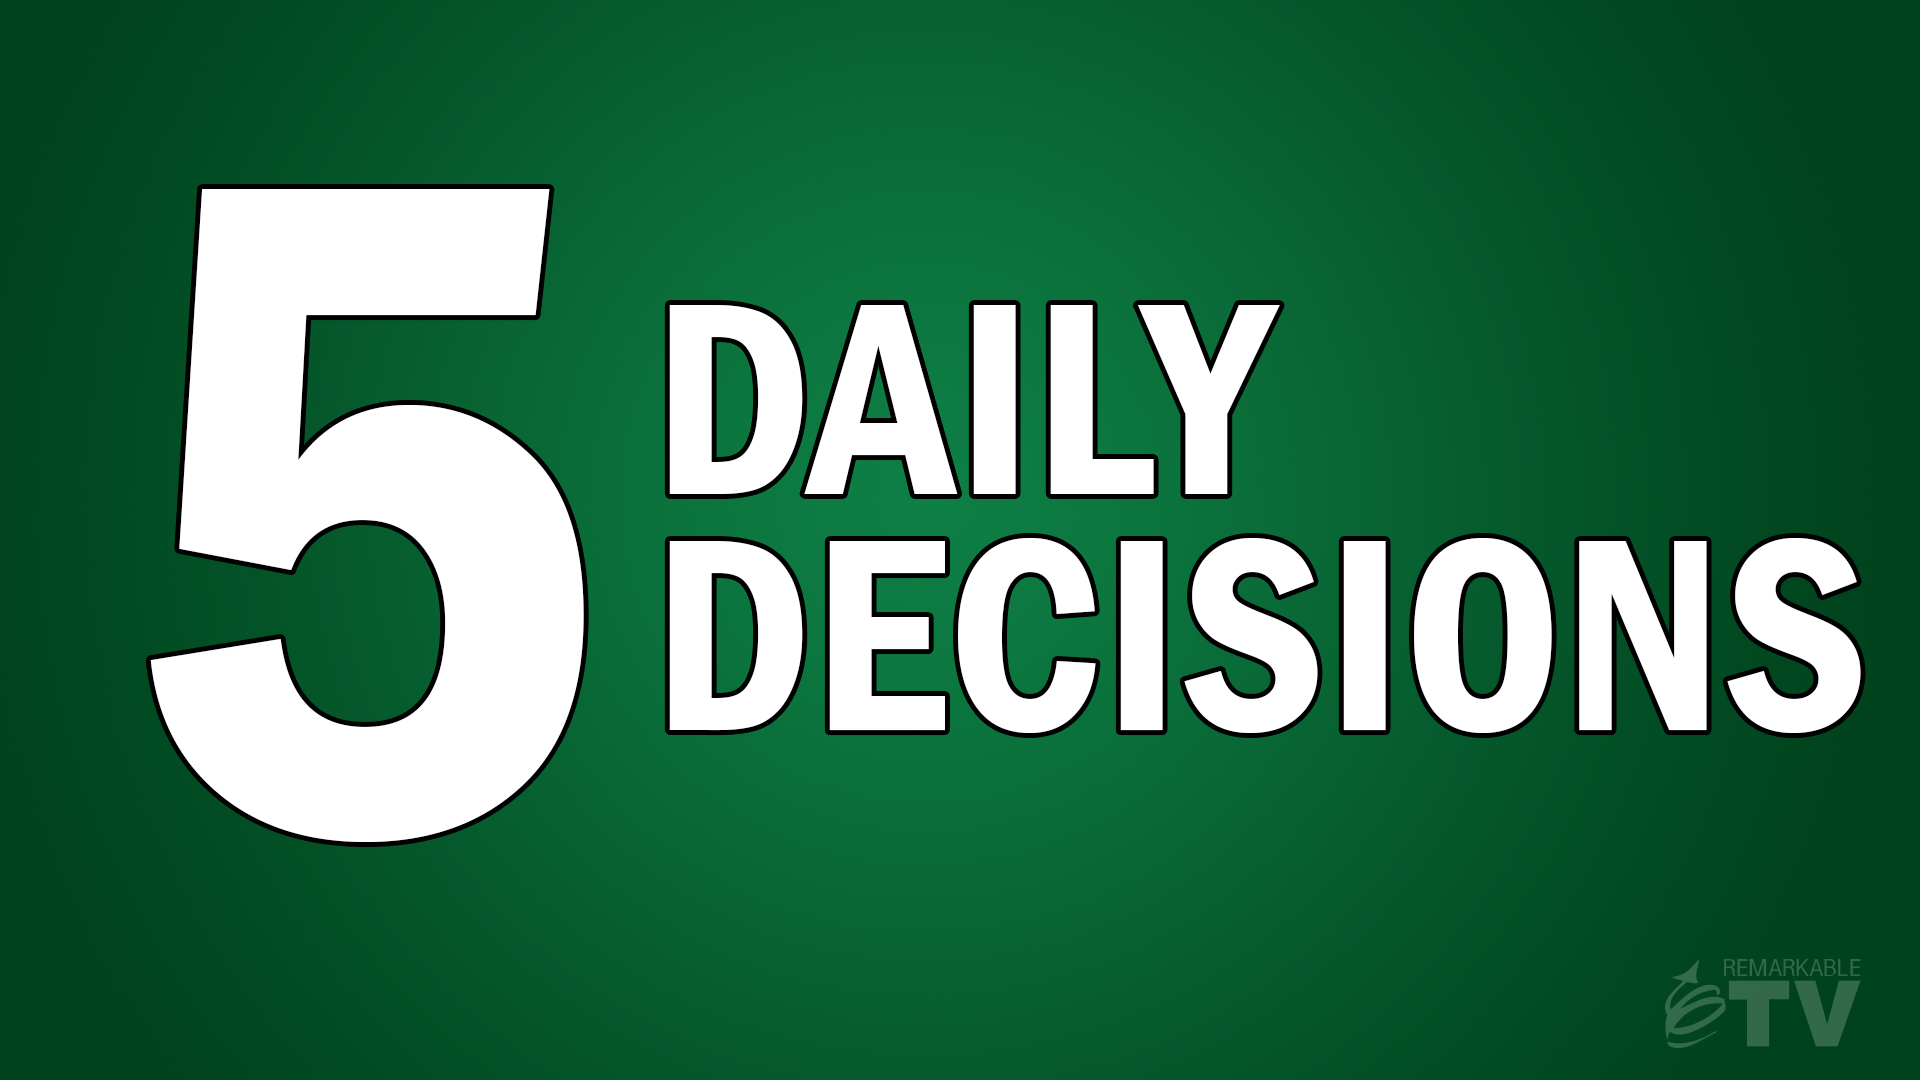 What five decisions could you make every day? Find out in this episode of Remarkable TV with Kevin Eikenberry